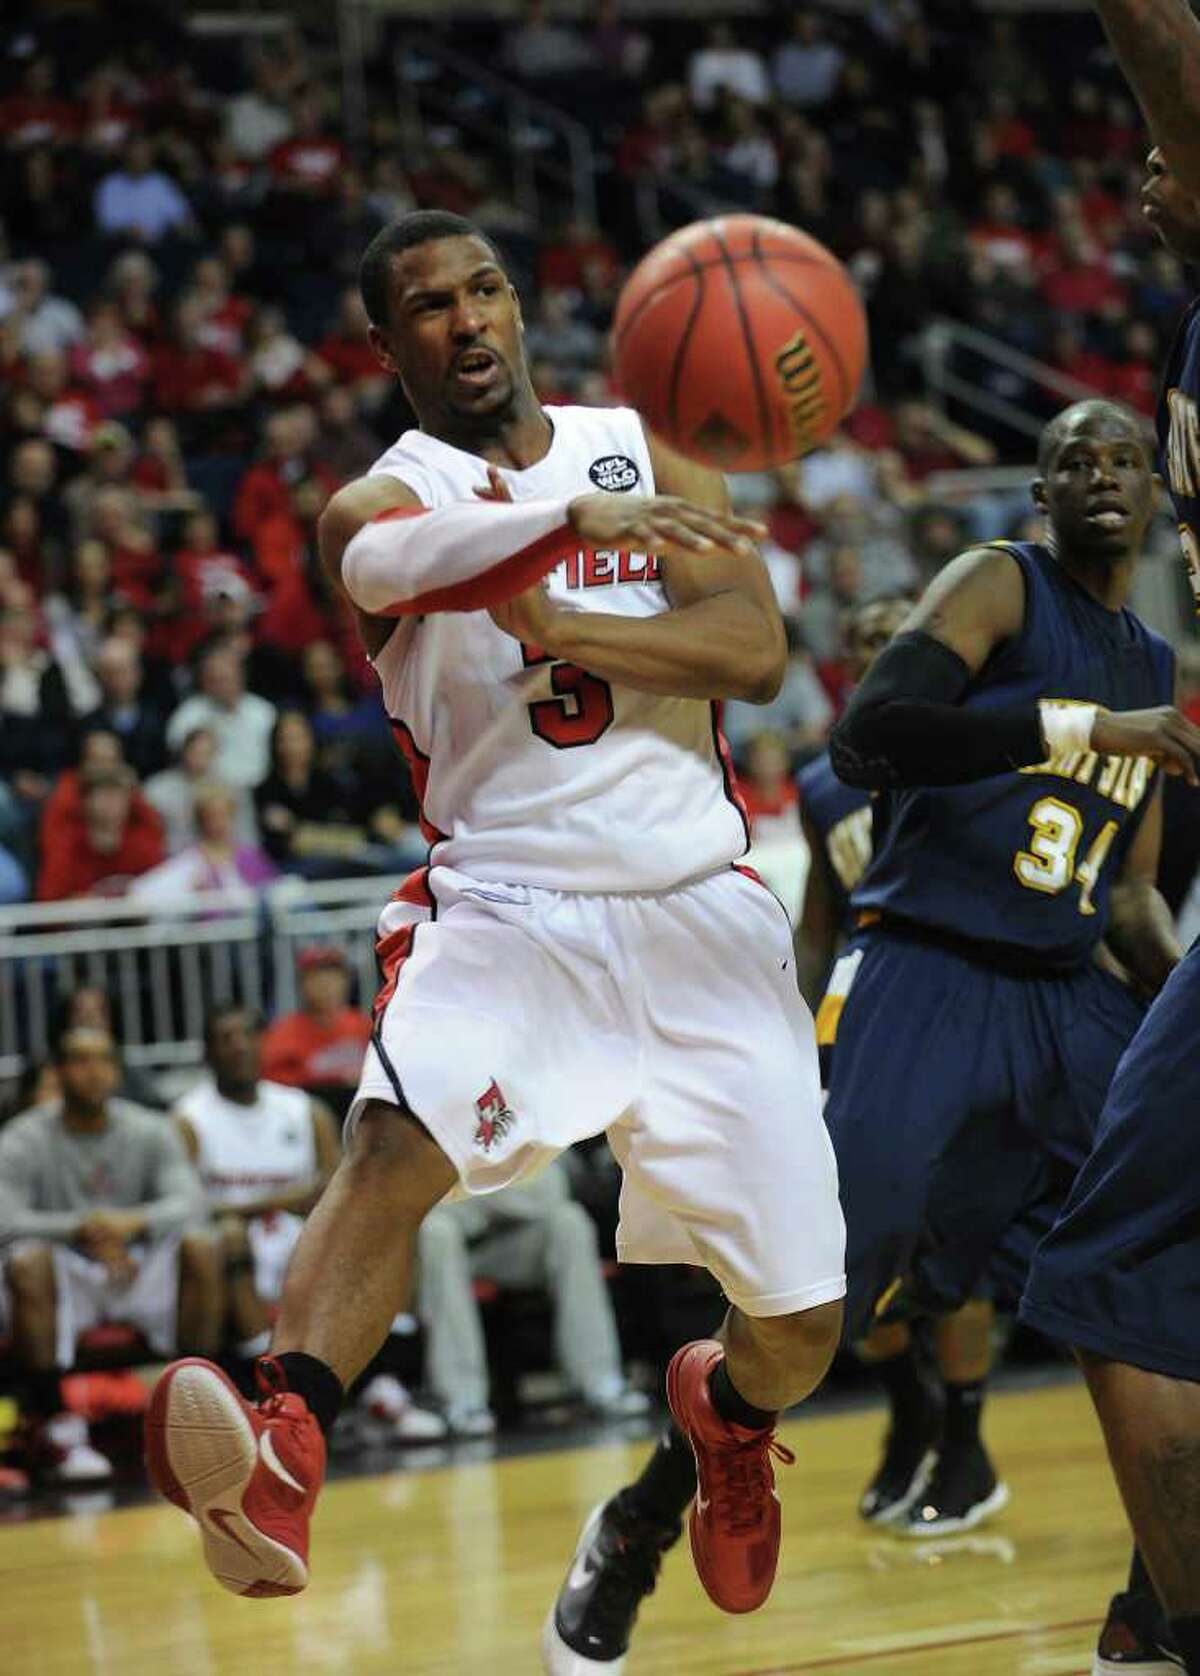 Fairfield University's Derek Needham whips a baseline pass during the Stags' second round NIT matchup with Kent State at the Webster Bank Arena at Harbor Yard in Bridgeport on Sunday, March 20, 2011.